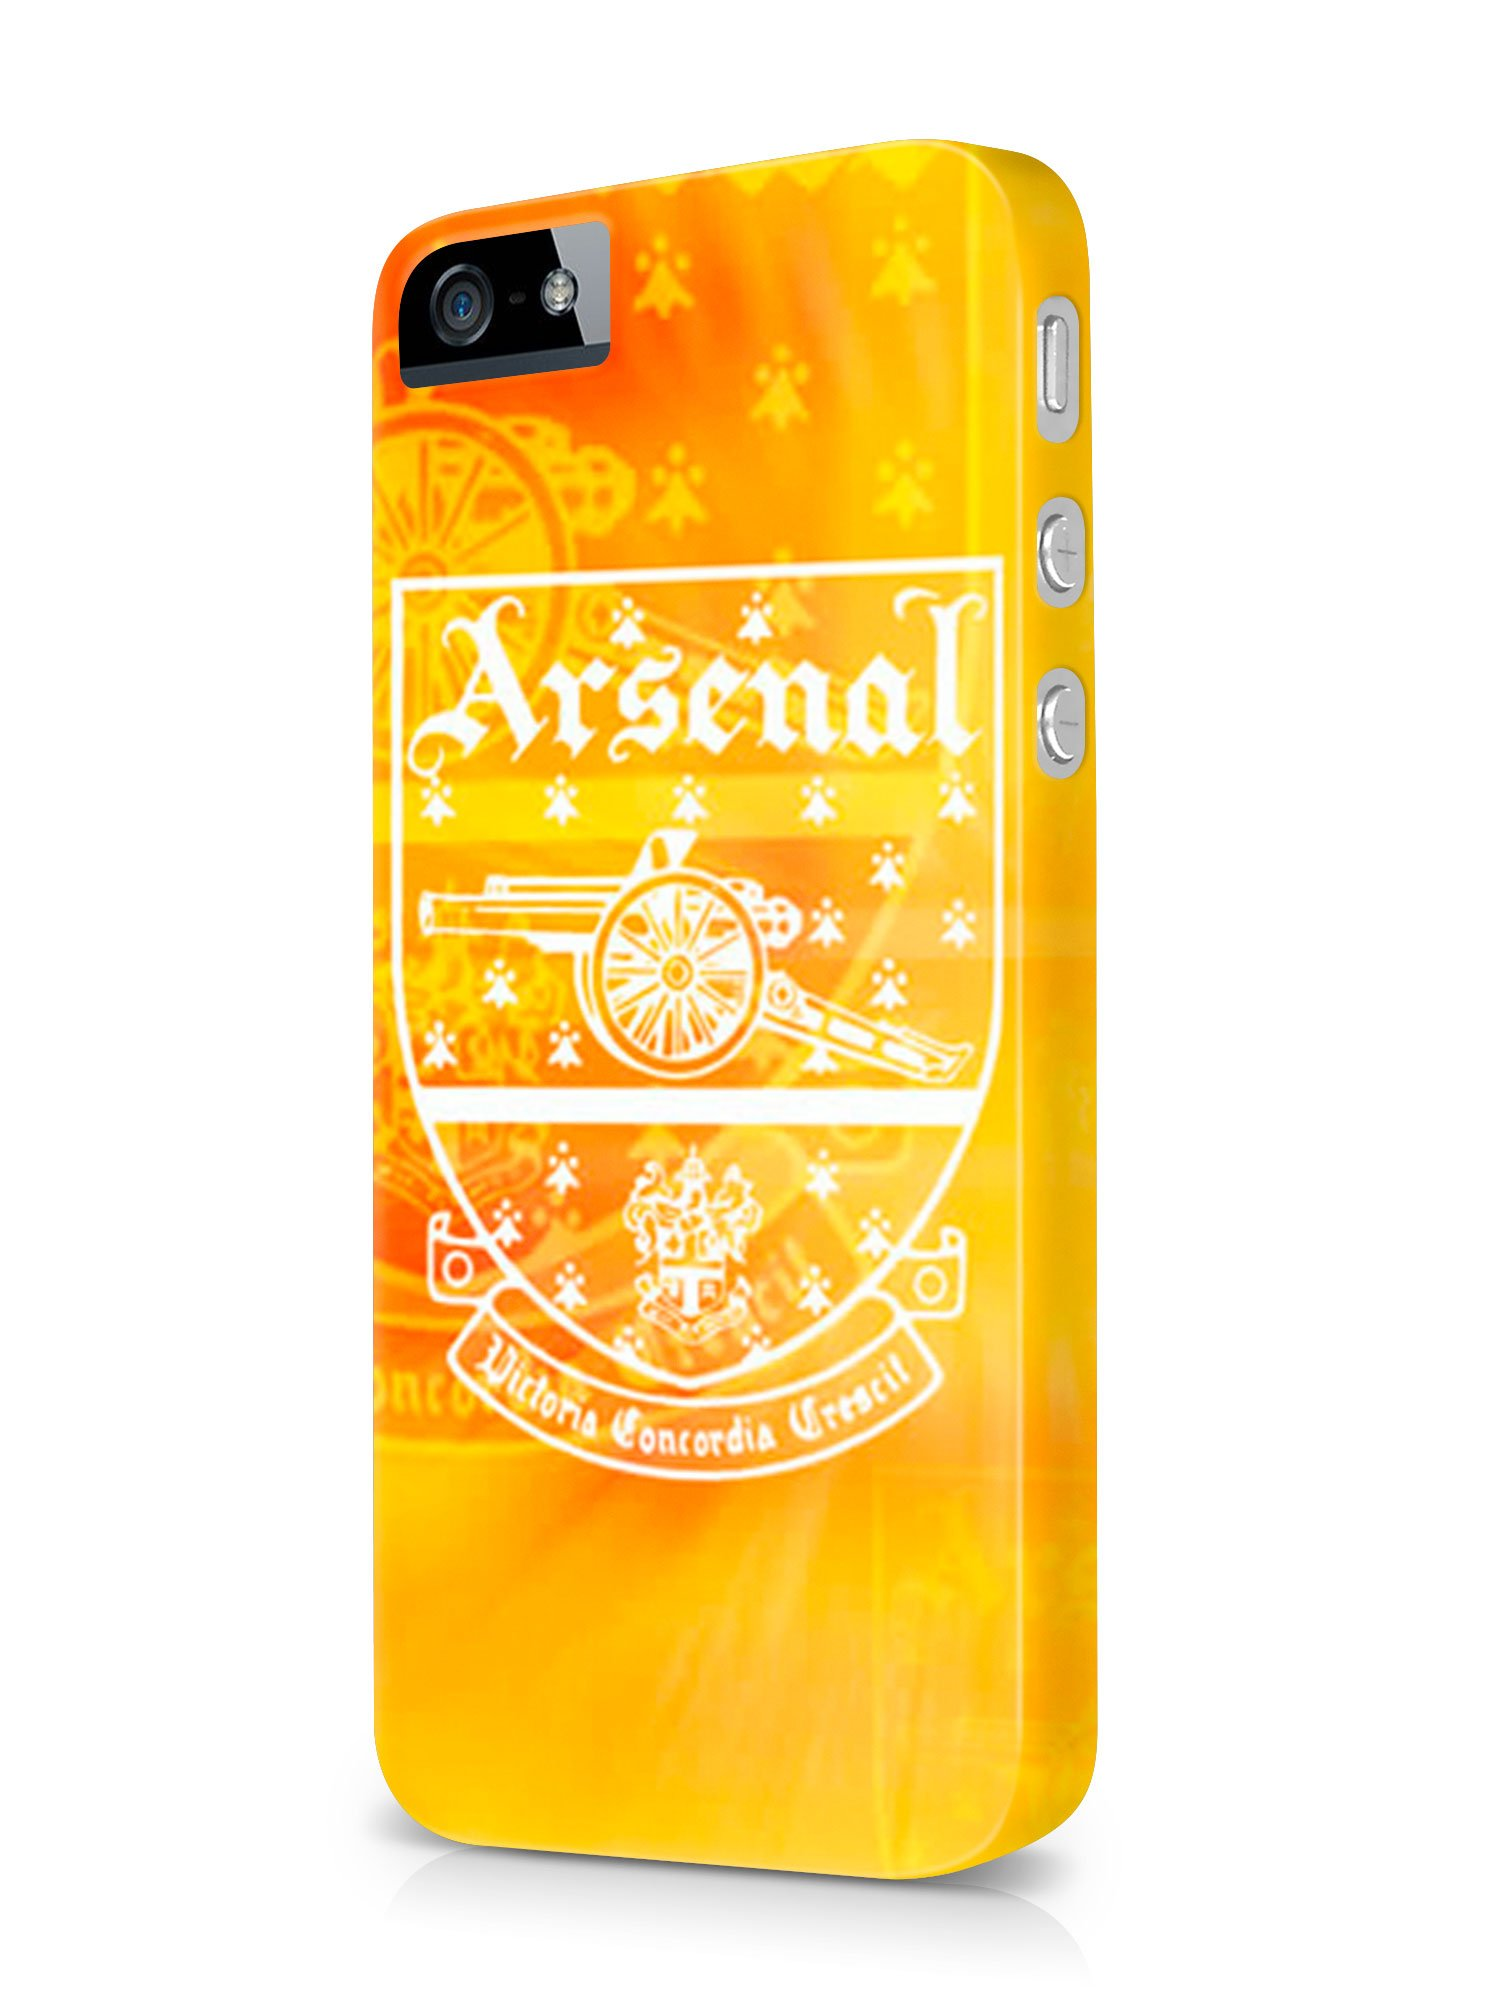 Arsenal FC Design case for iphone 5/5s/5se. Football UK